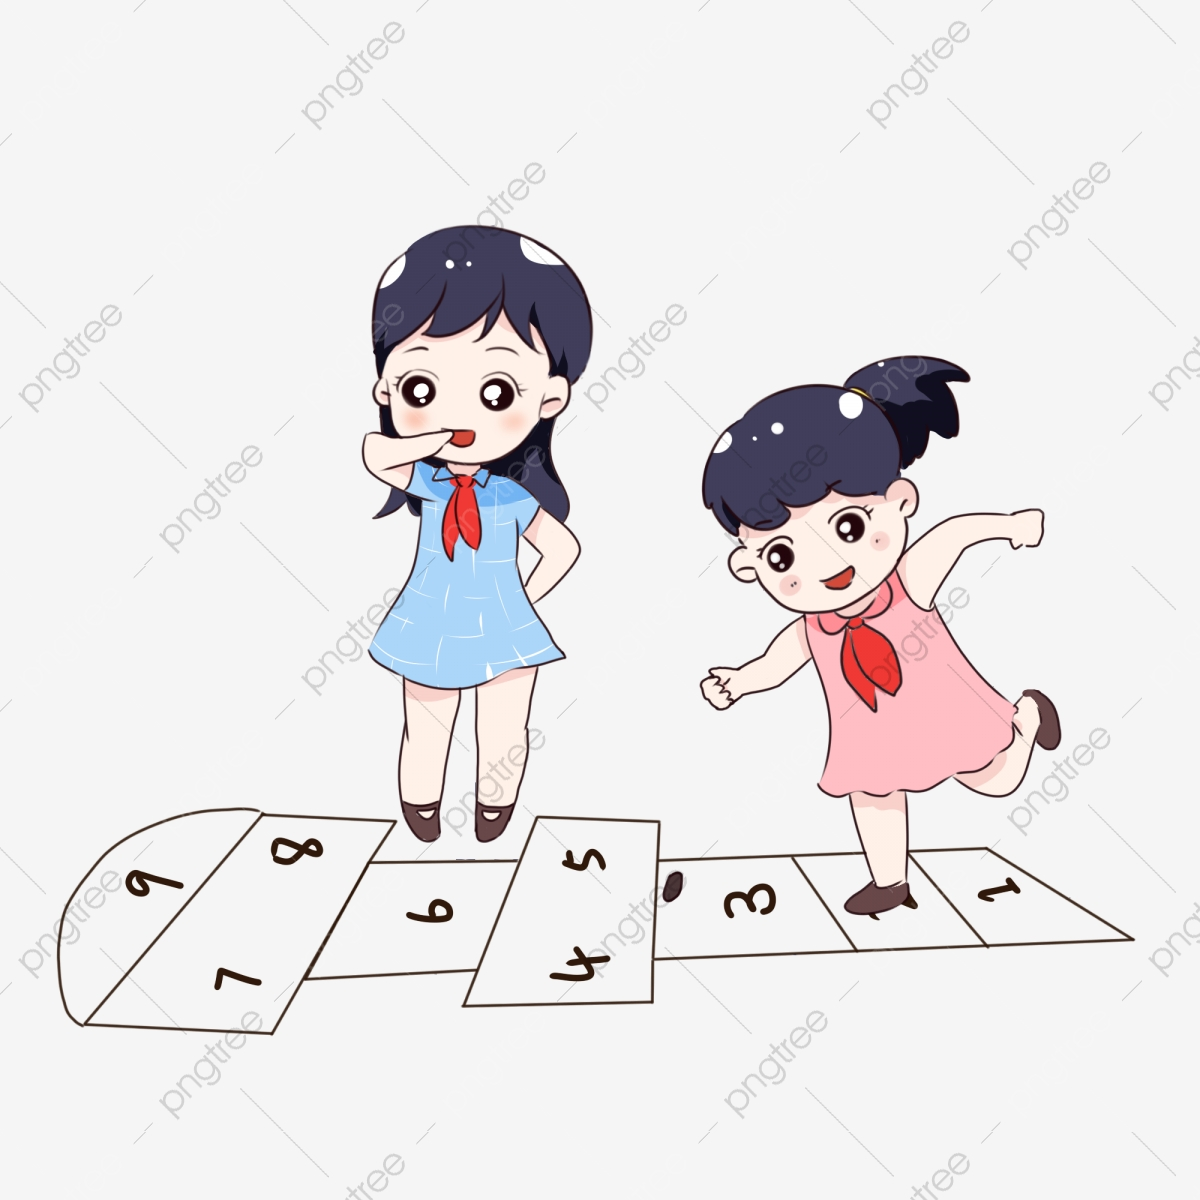 Hand Painted Cartoon Childrens Day Jumping Plaid Game